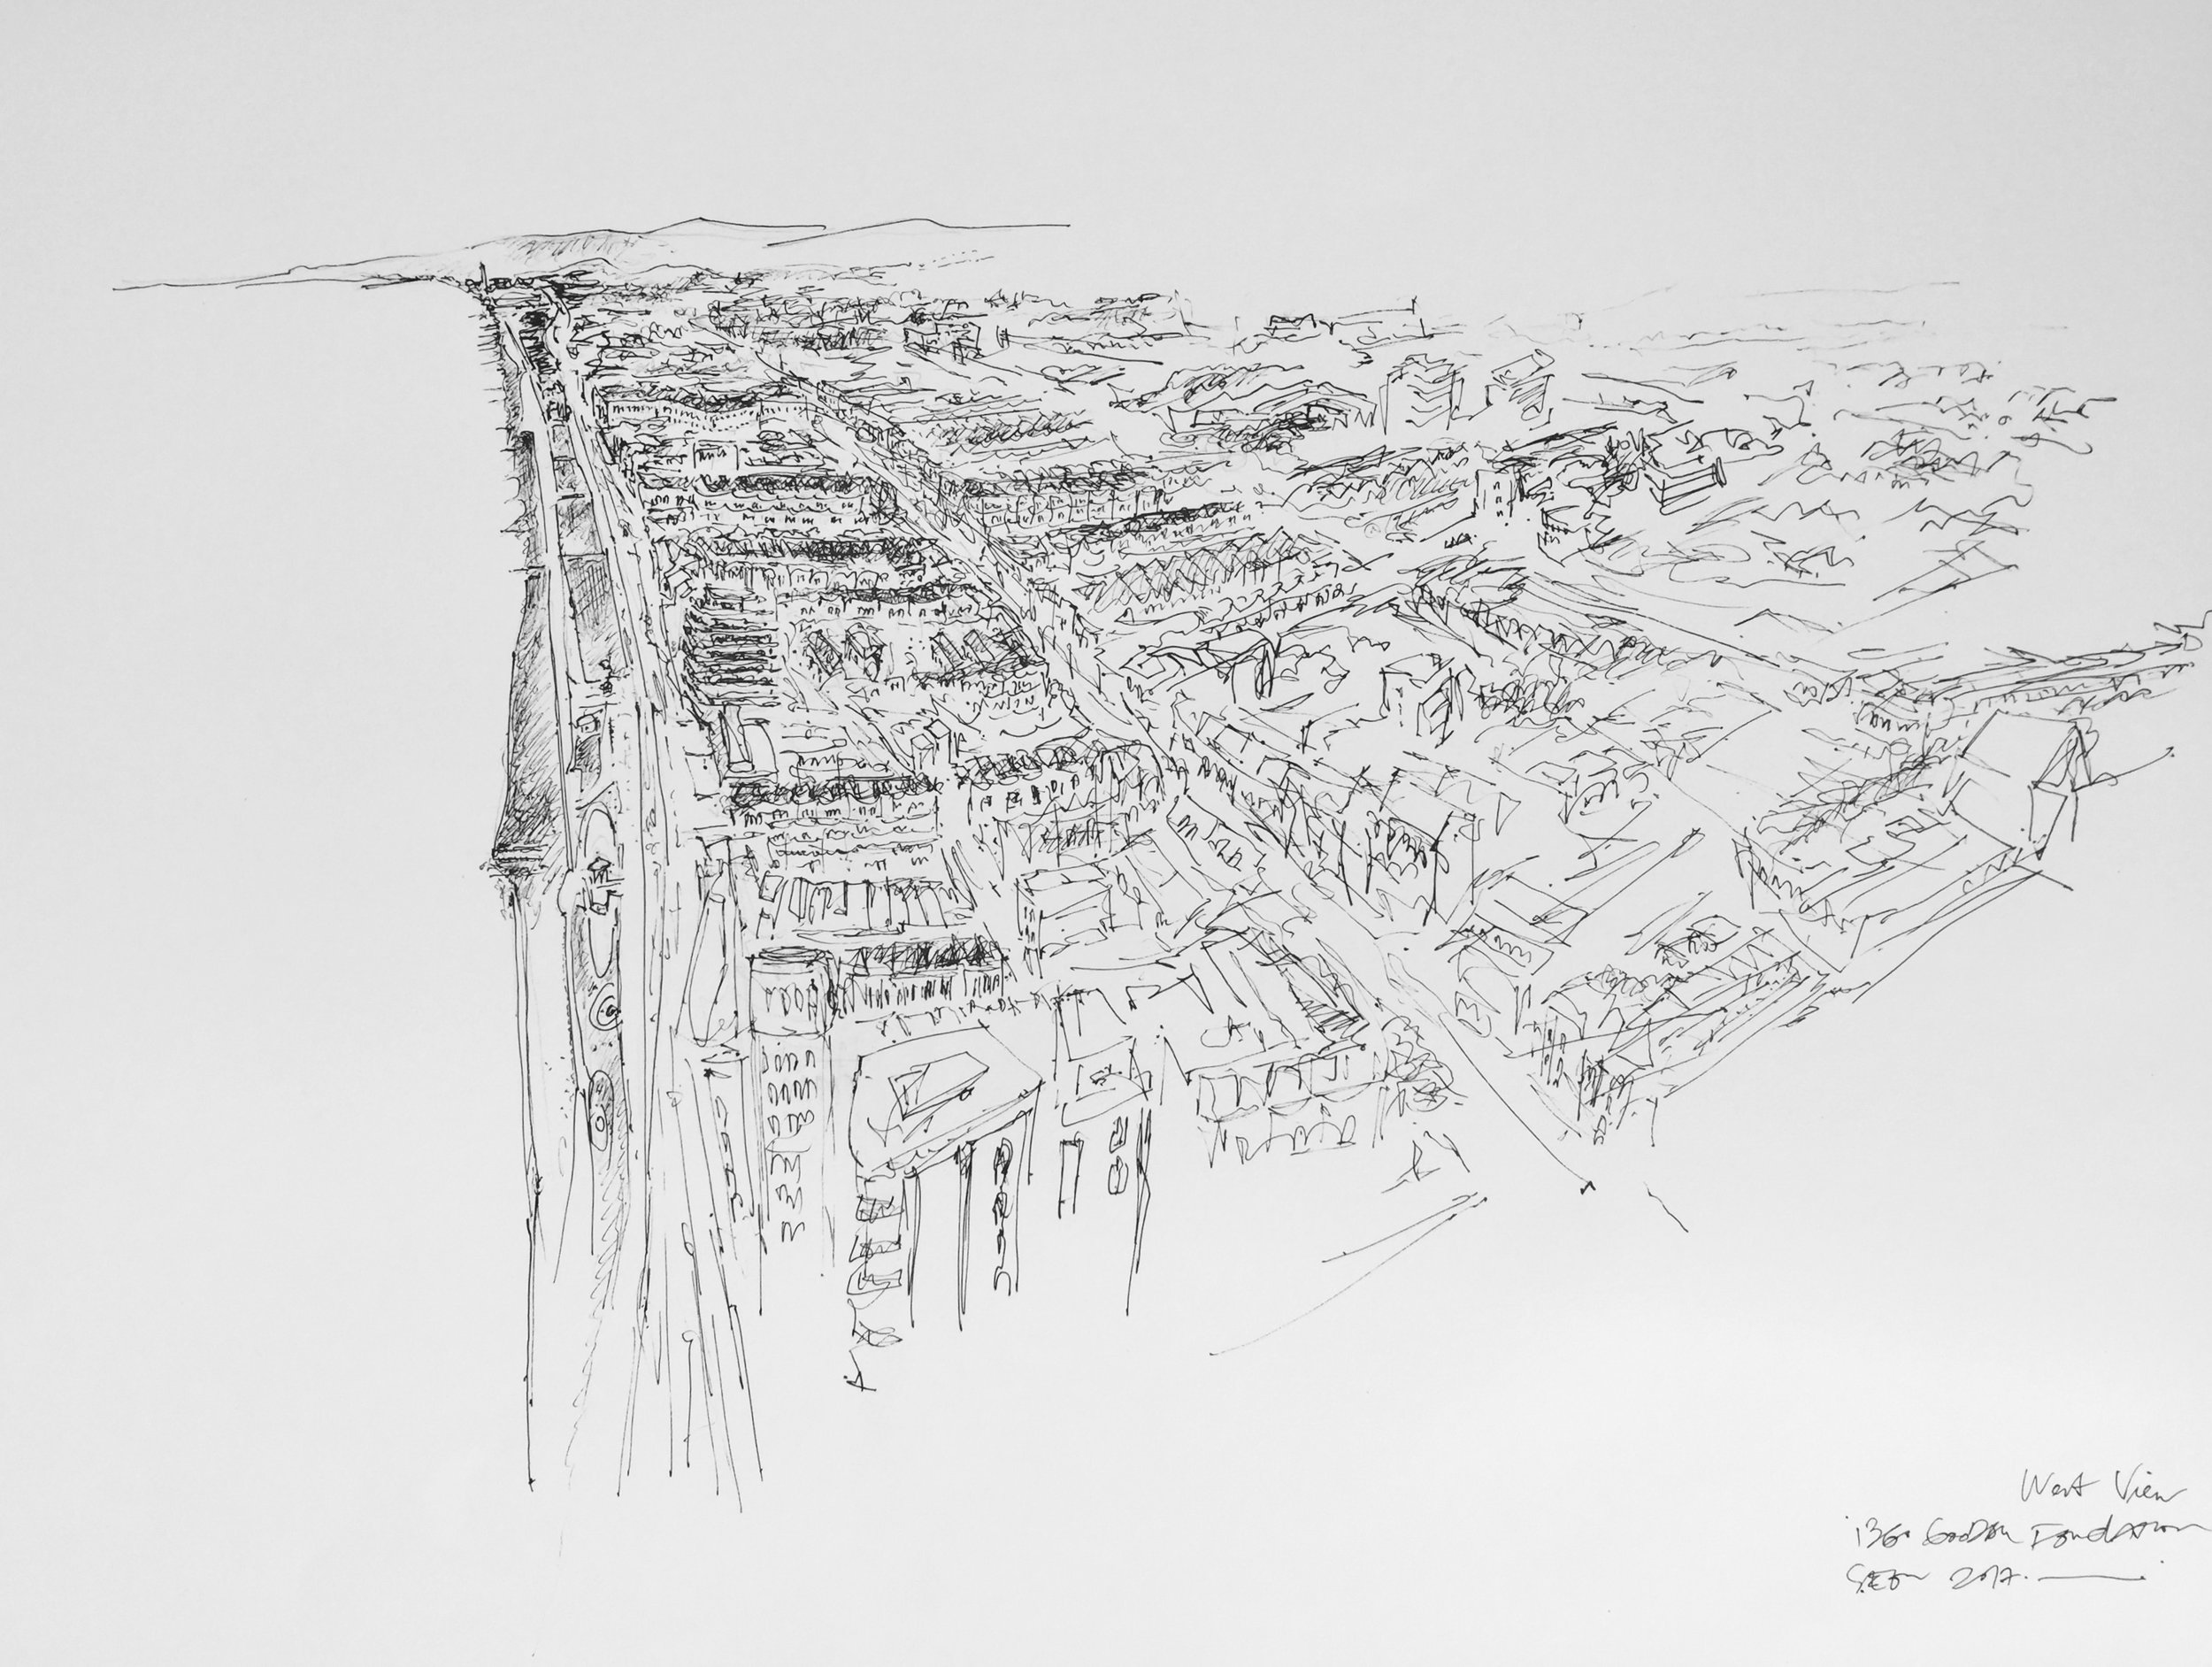 Artist: Solange Leon Iriarte  Title: i360 and West Hove Seascape  Medium: Pencil and inkpen  Size: 66 x 90 cm  Price: £5500